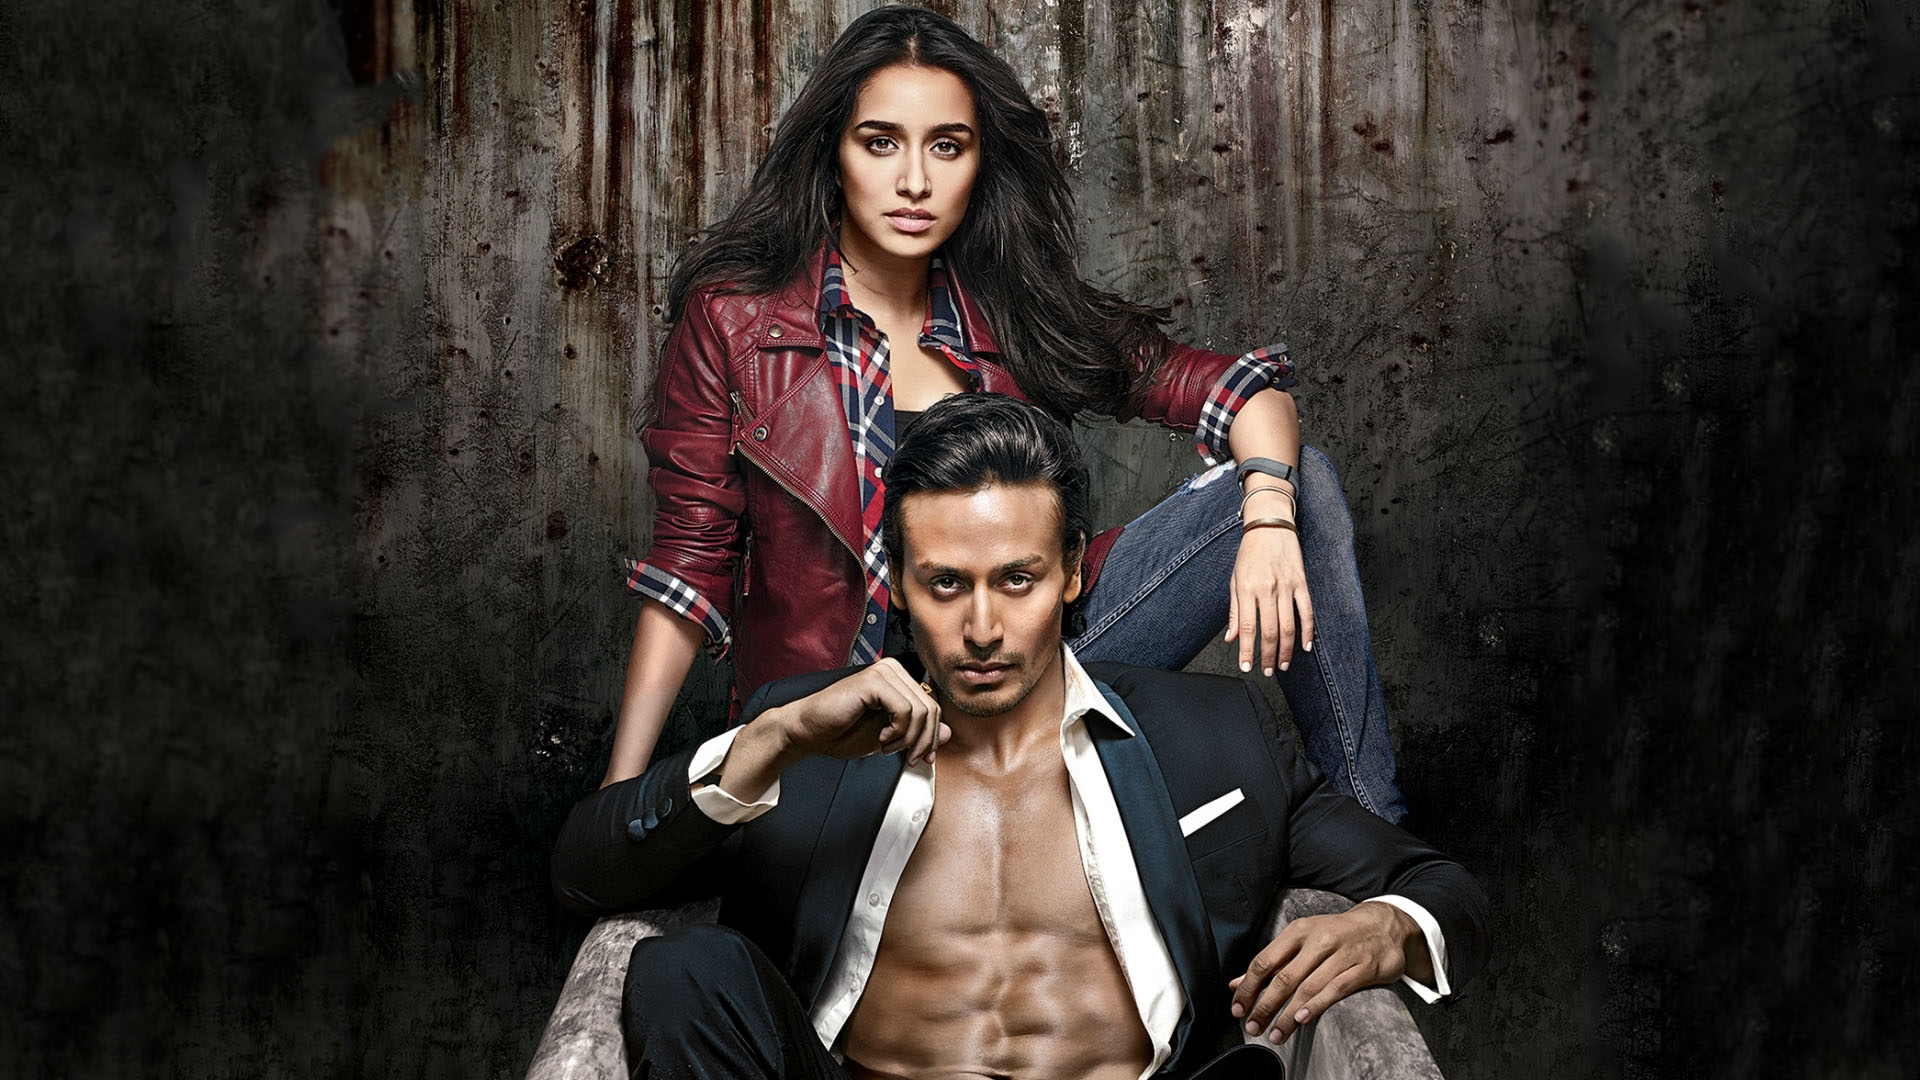 Tiger Shroff Hd Wallpaper Baaghi A Rebel For Love Wallpapers Hd Wallpapers Id 17932